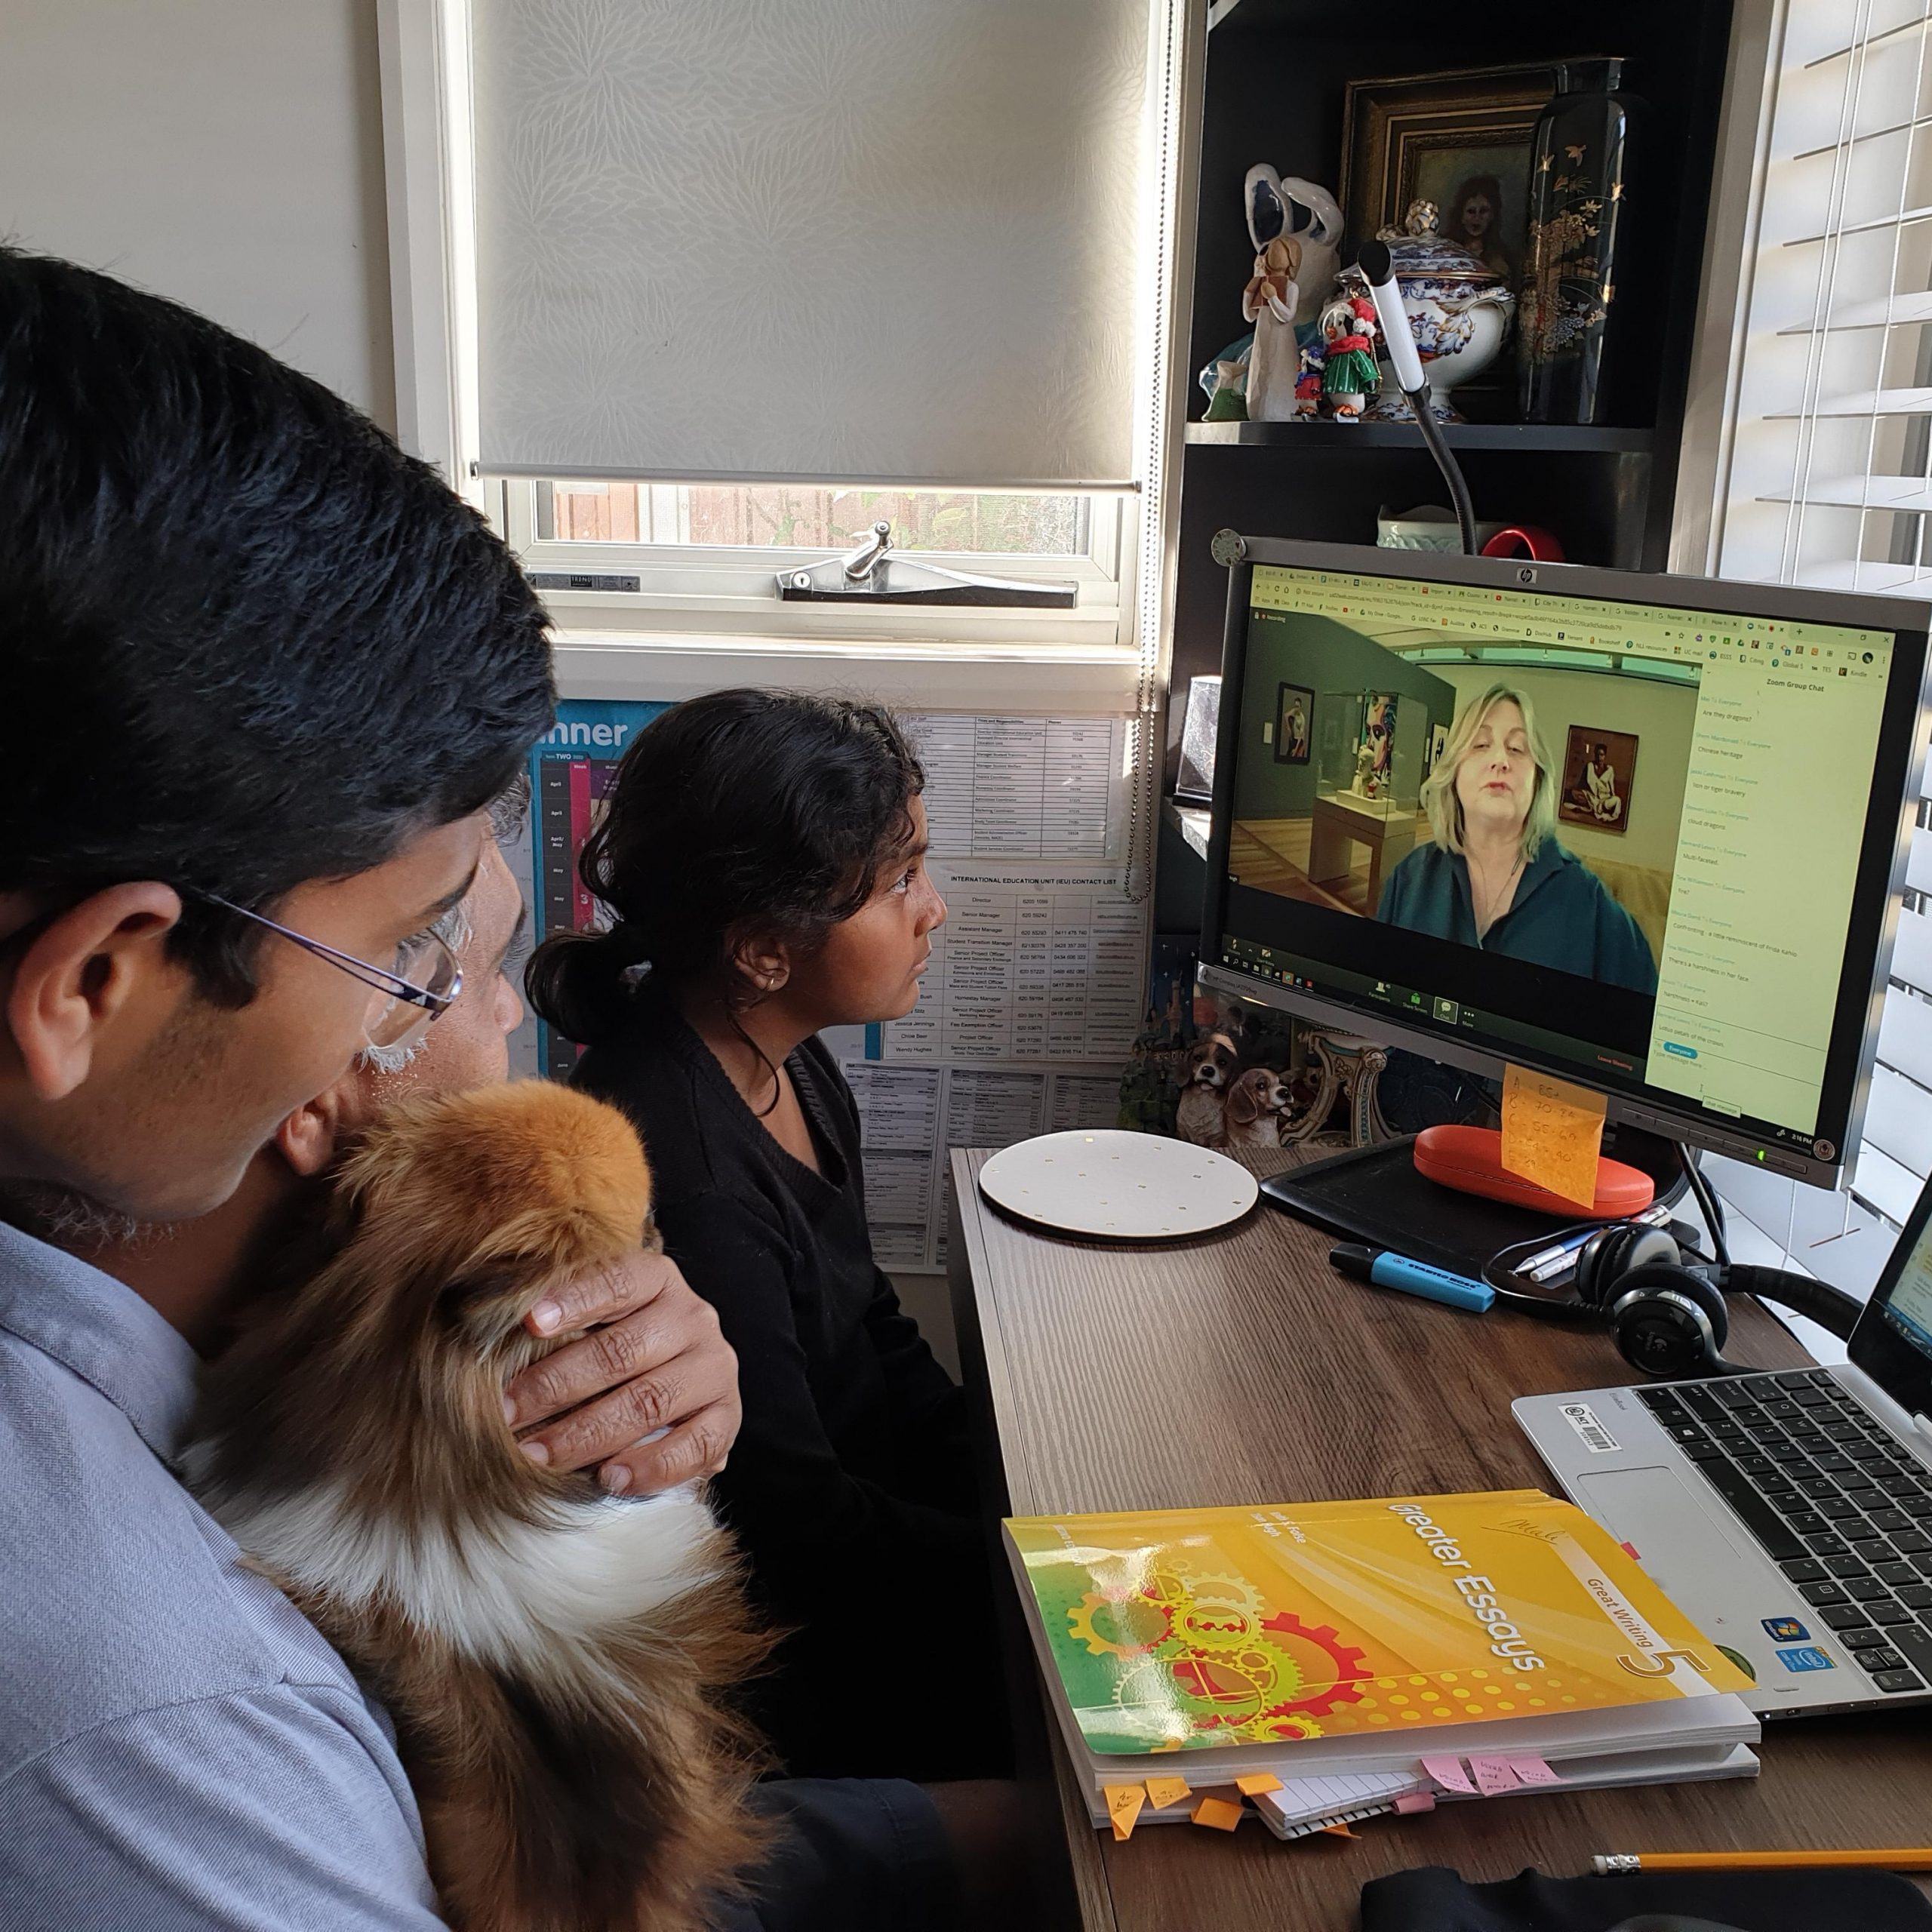 3 family members watching woman on computer screen